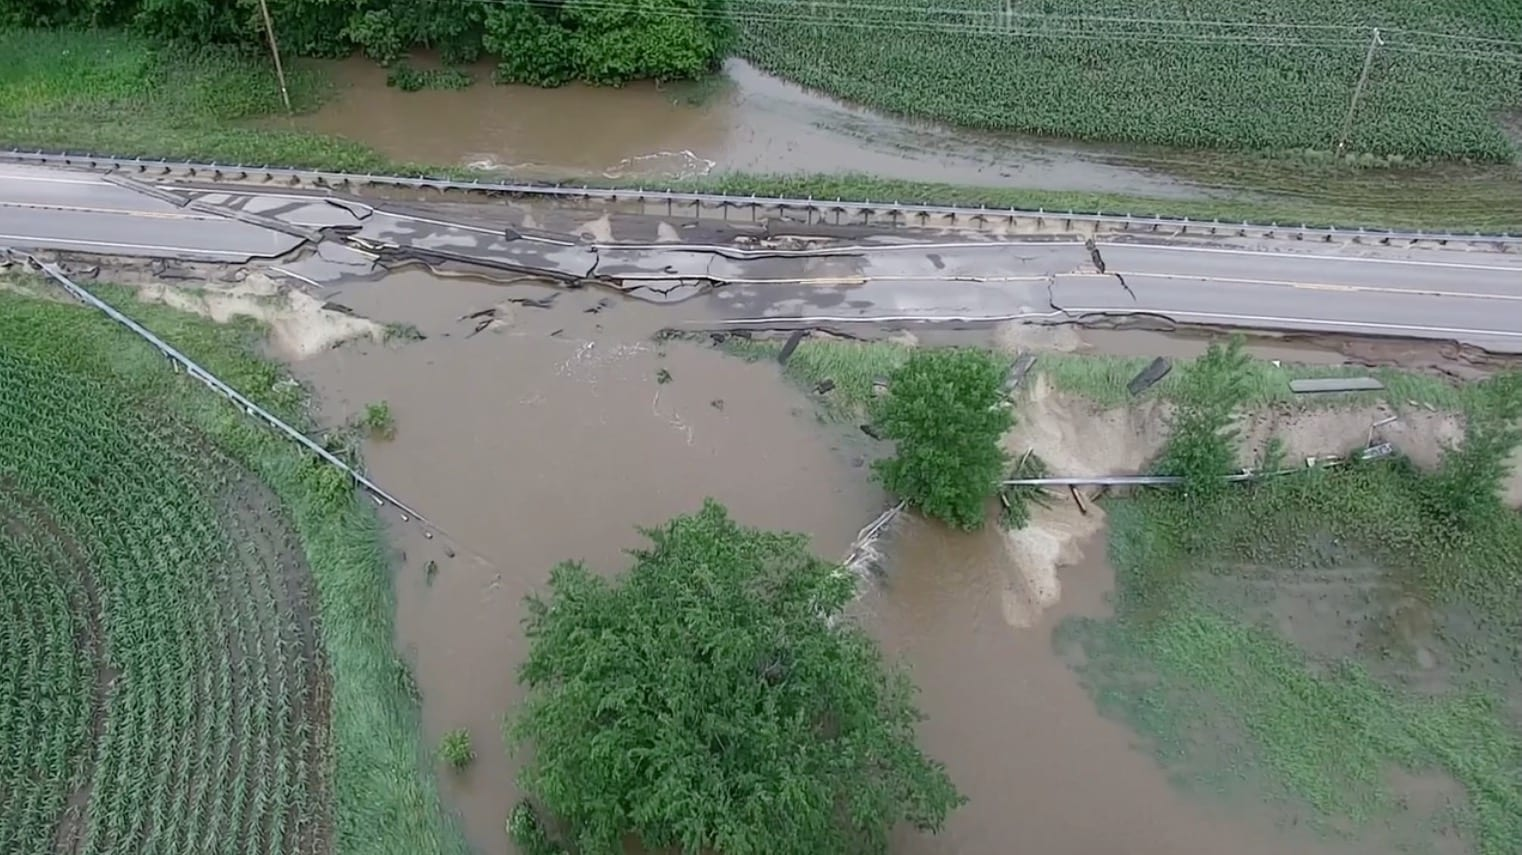 Drone footage shows extent flood damage in St. Croix County, Wisconsin